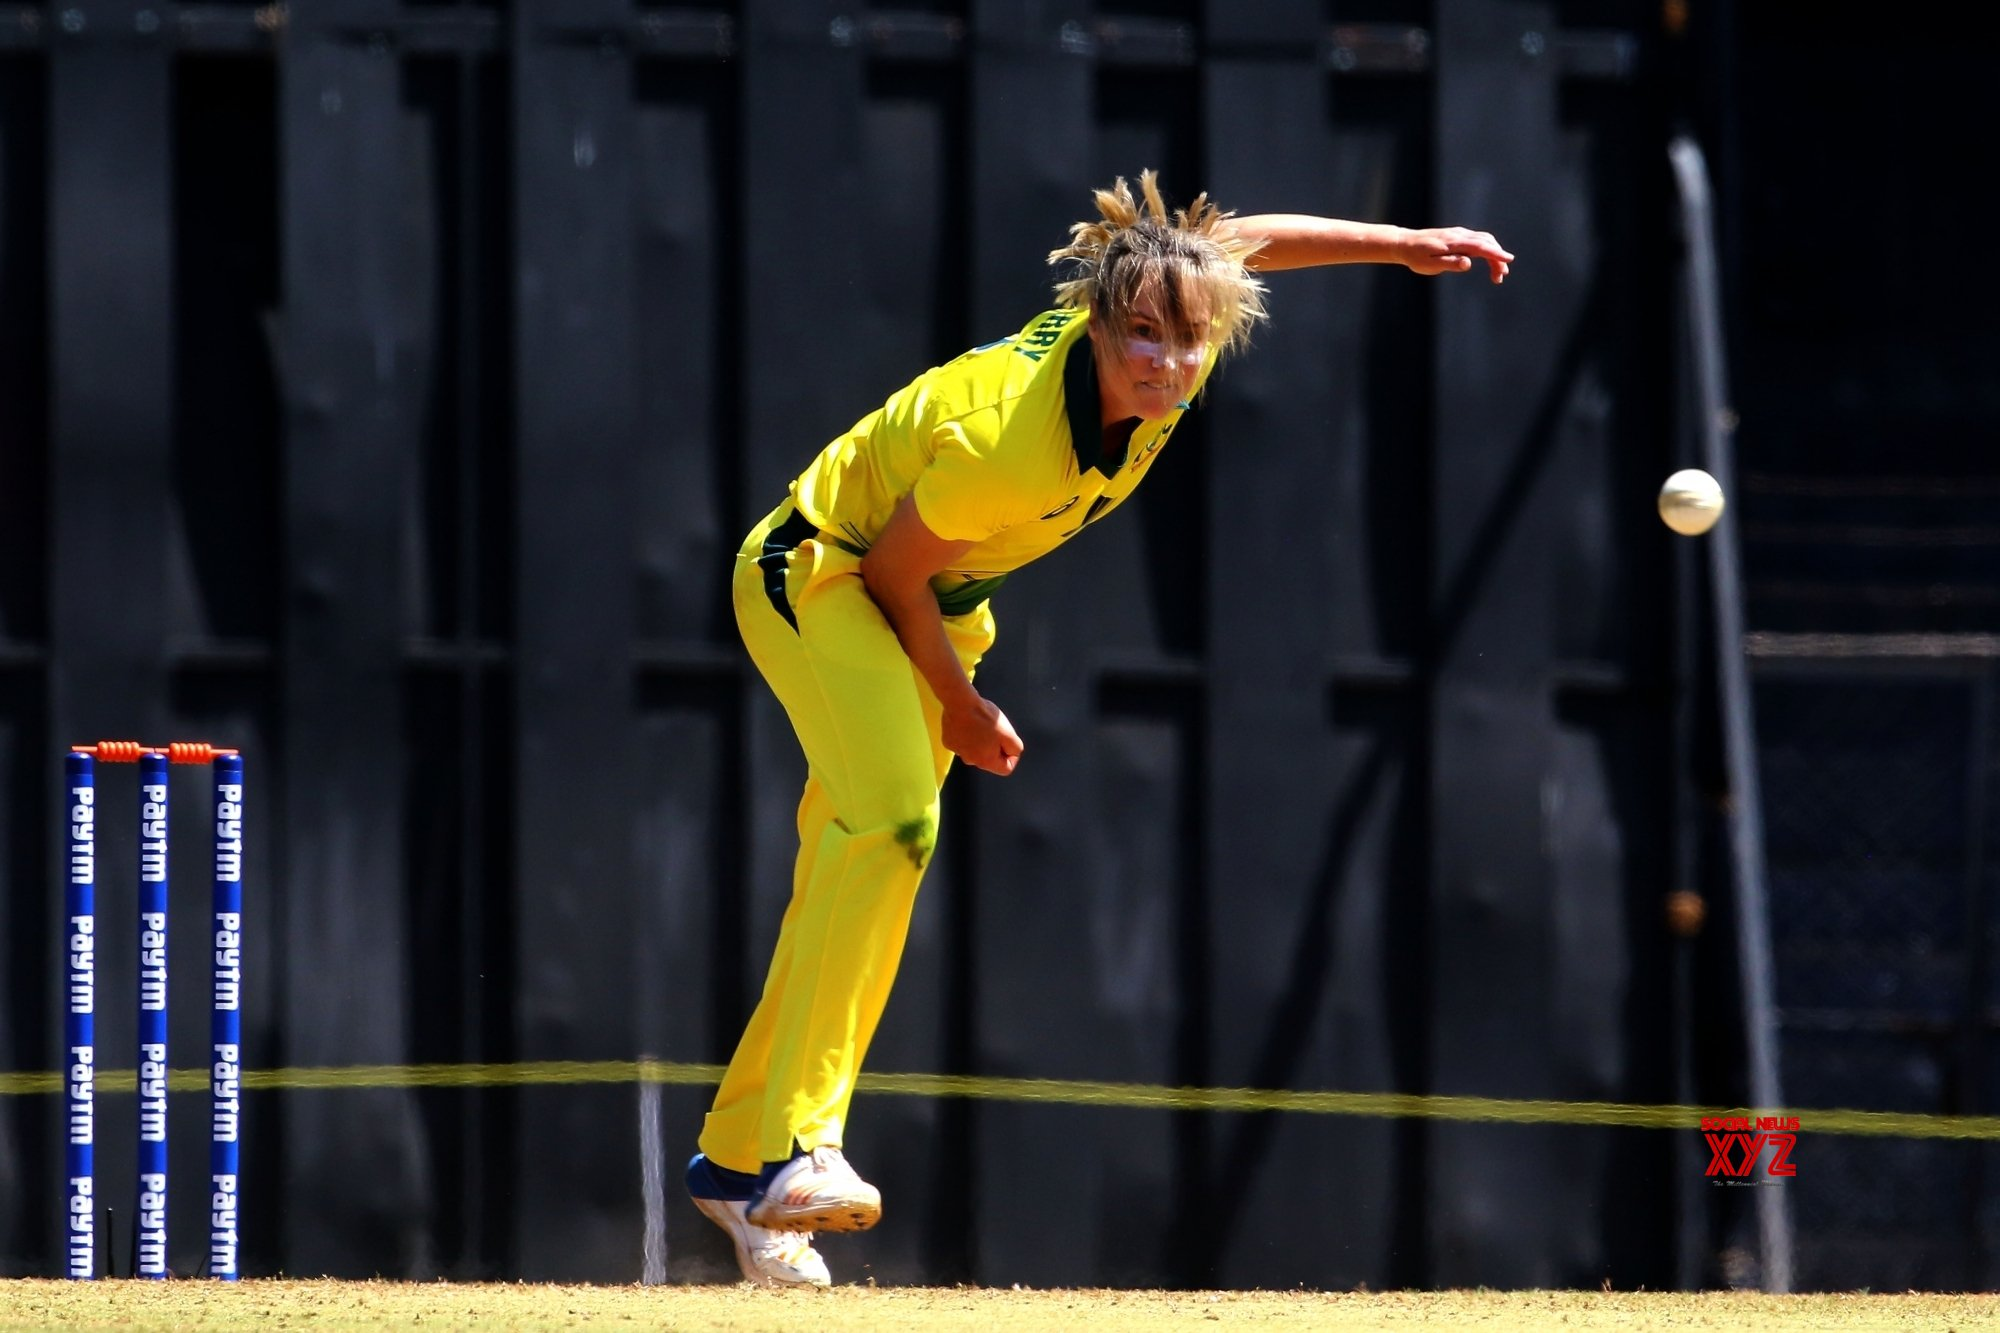 150 players from 10 countries to feature at Women's T20 WC